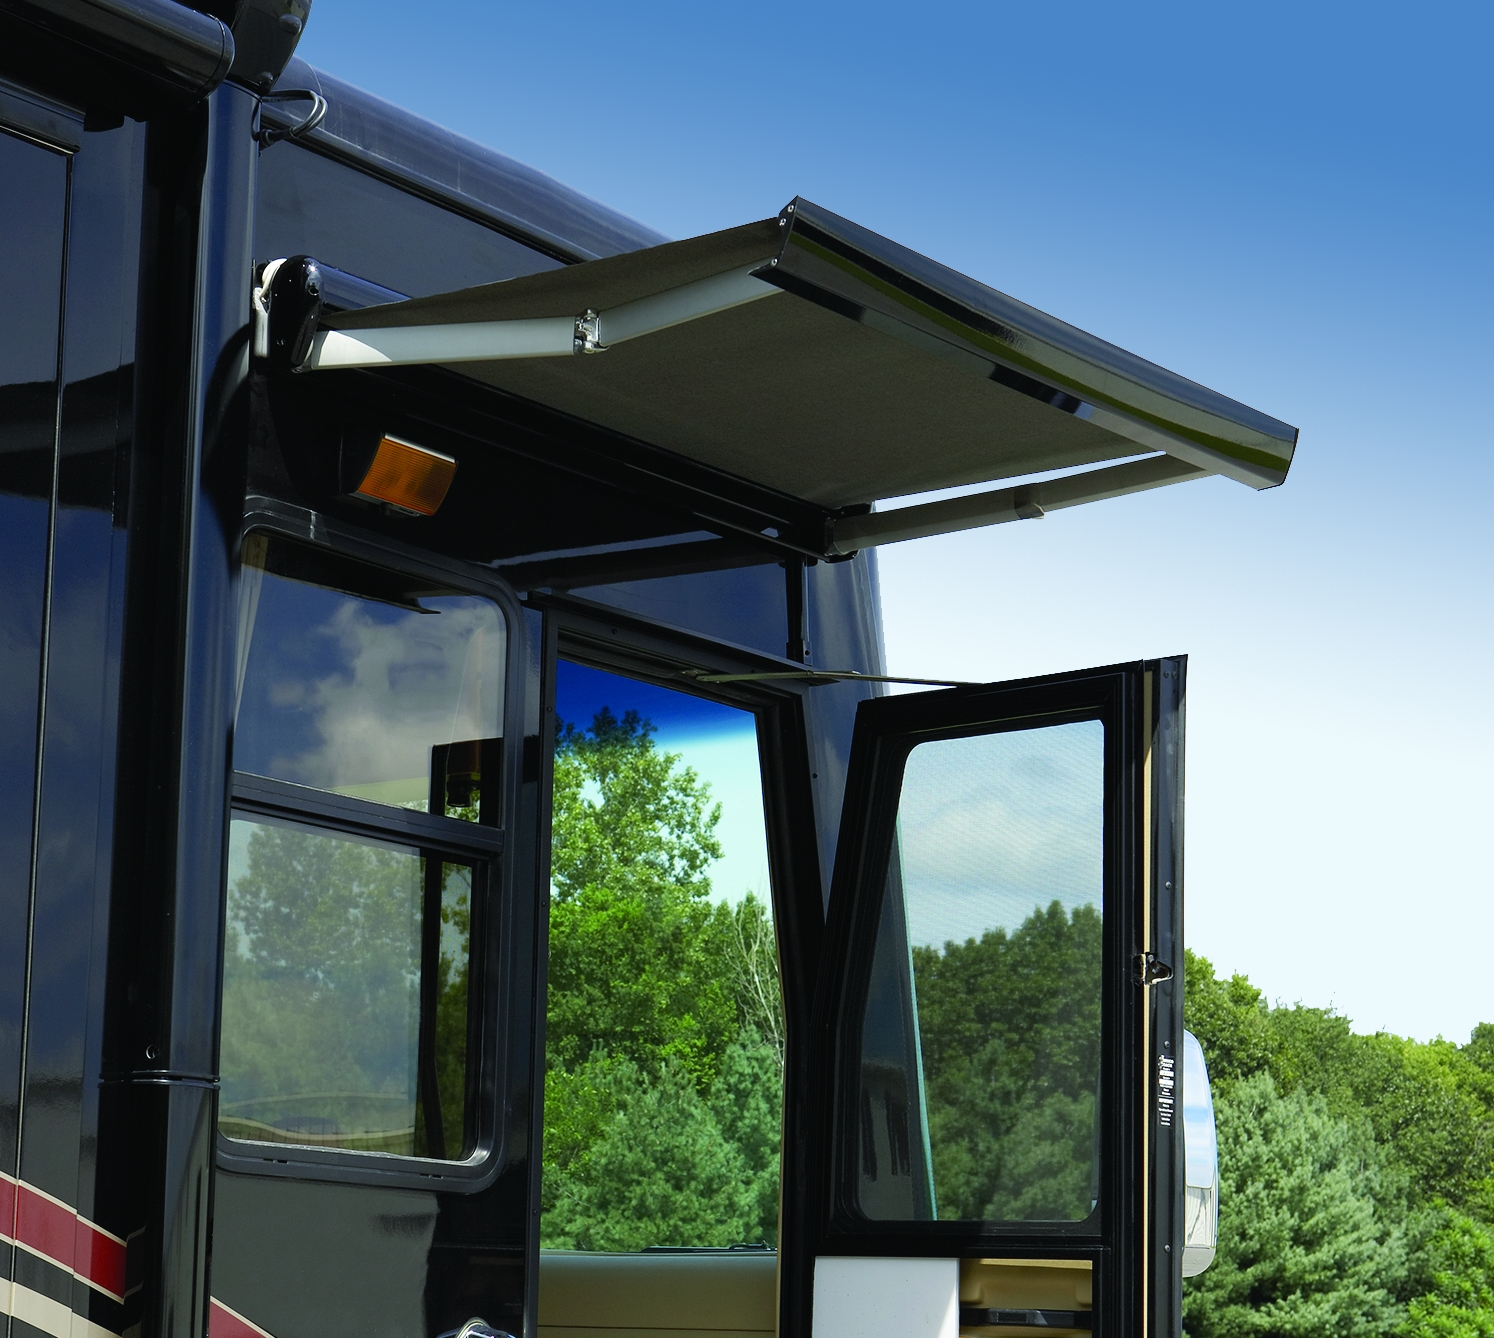 43056ARJVDP Carefree RV Awning Over-The-Door Awning